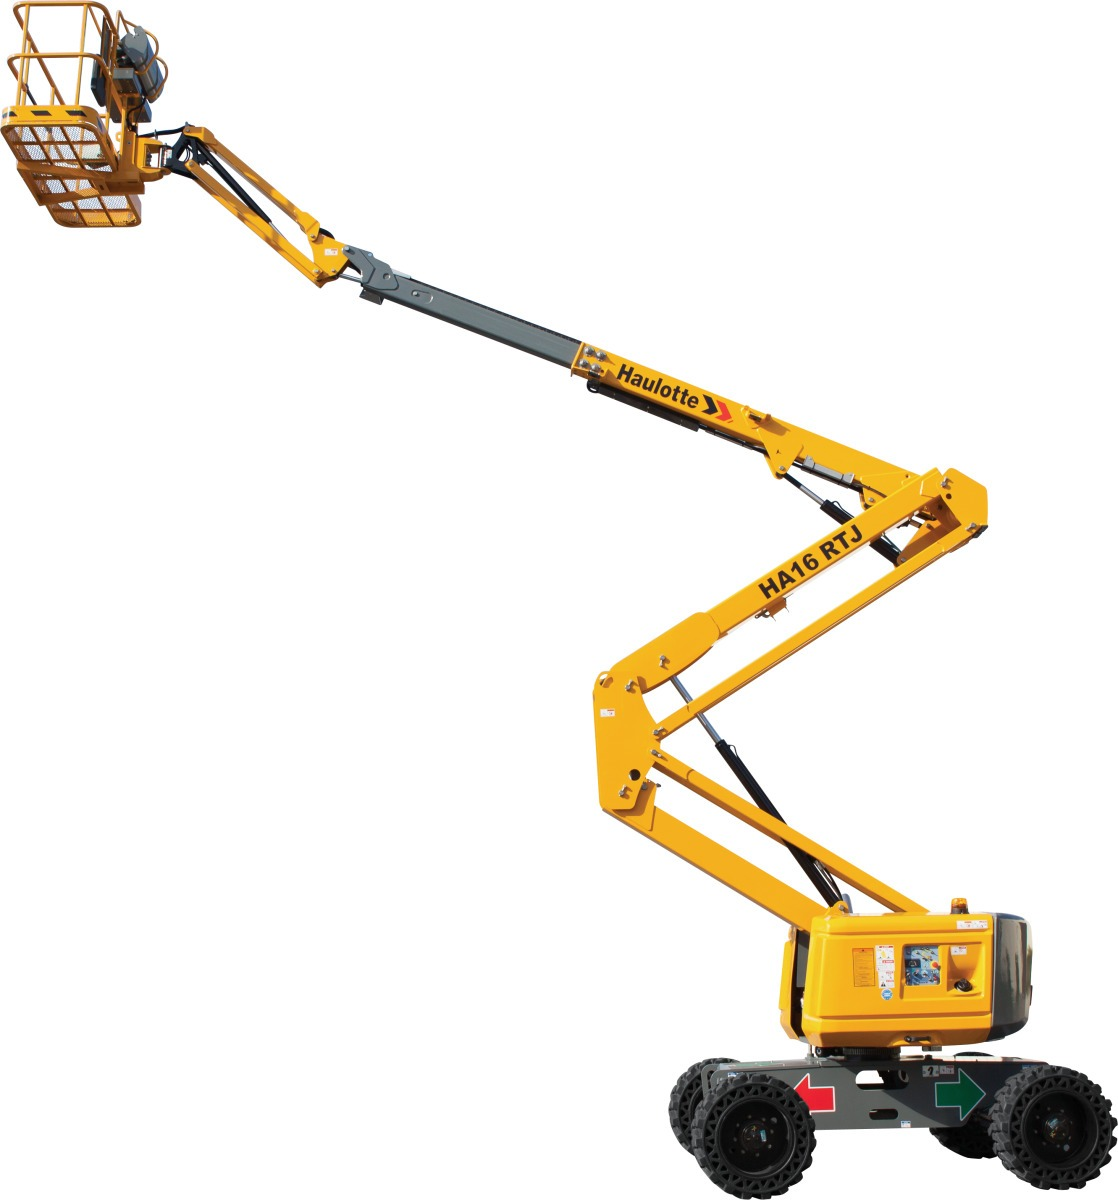 HA 46 RTJ O Articulating Boom Lift